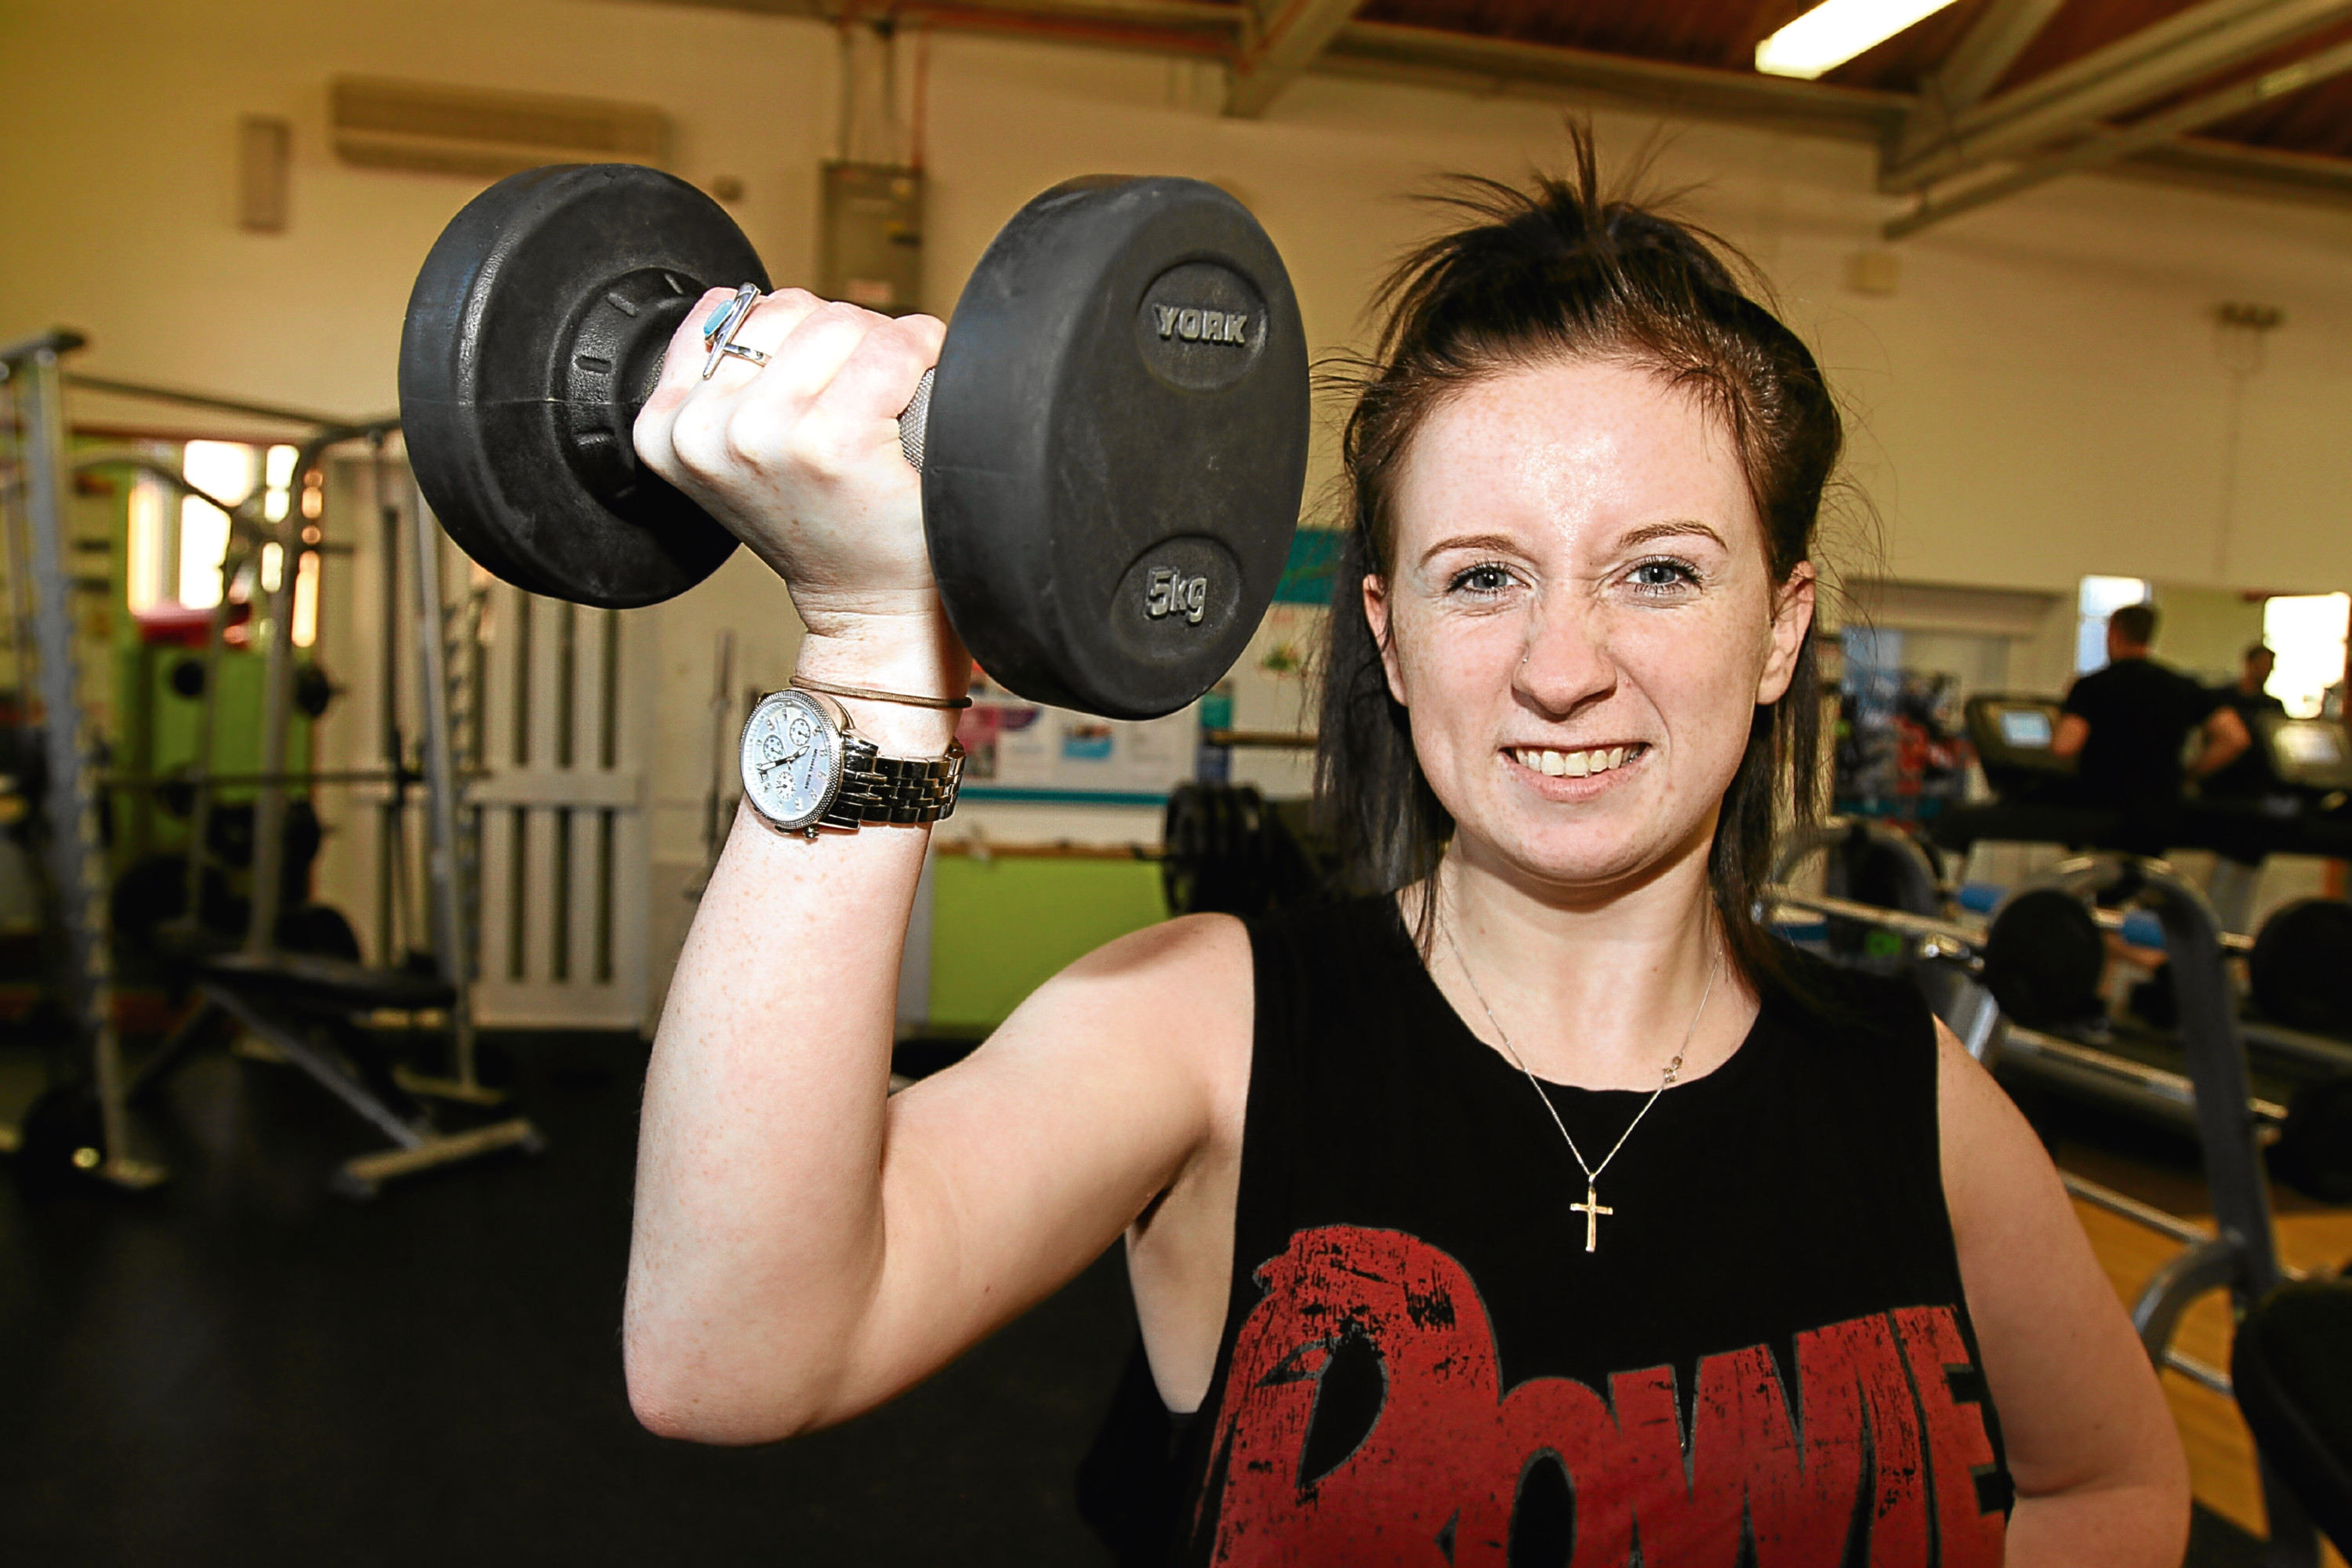 Tele reporter Amy Hall continues her fitness programme at Lochee Sports Centre